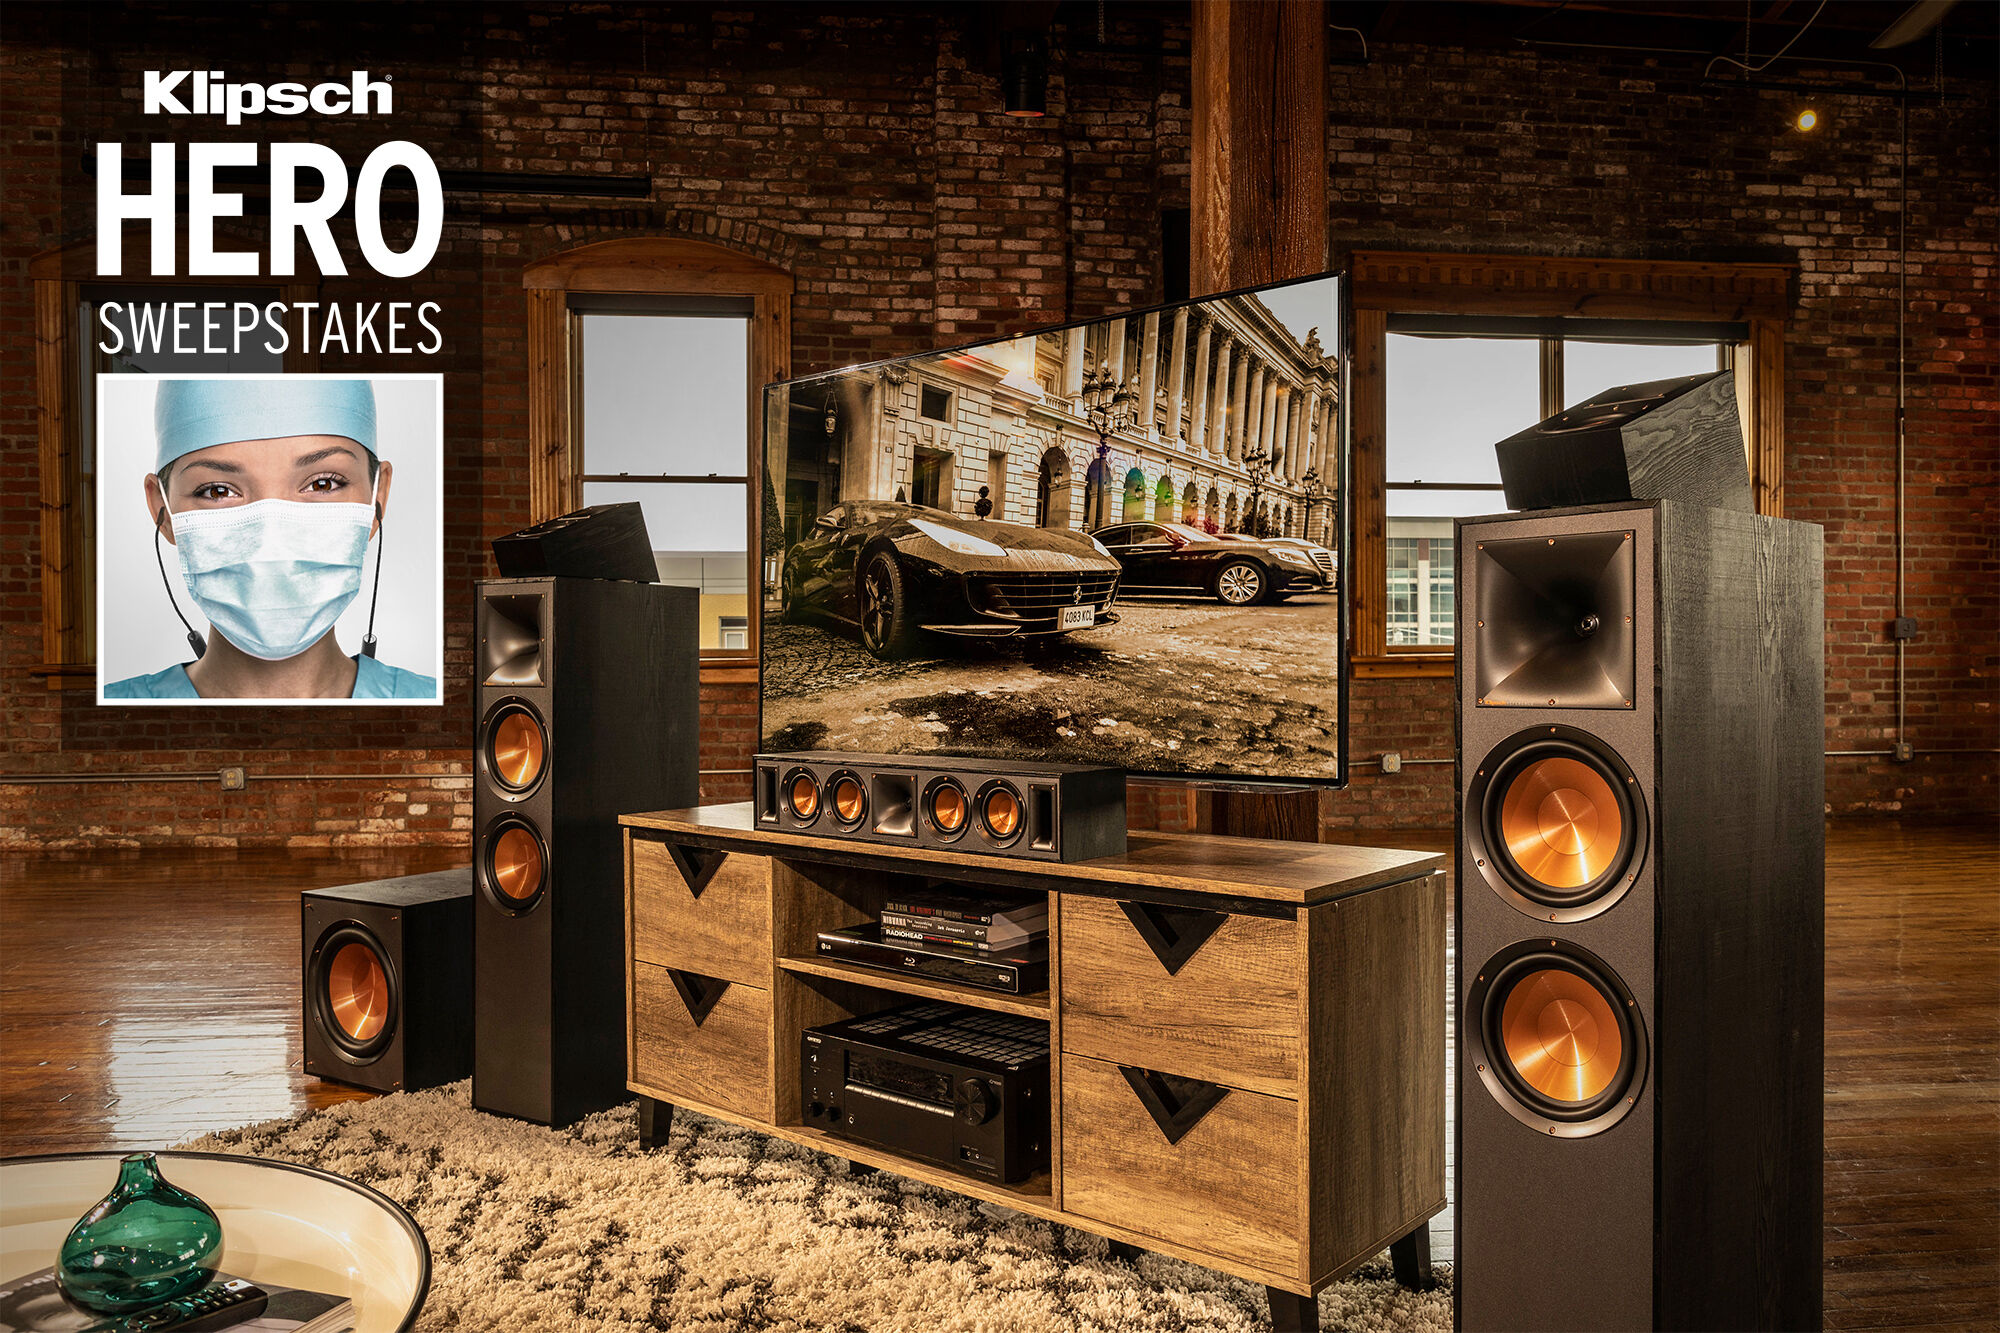 Klipsch Hero Sweepstakes home audio